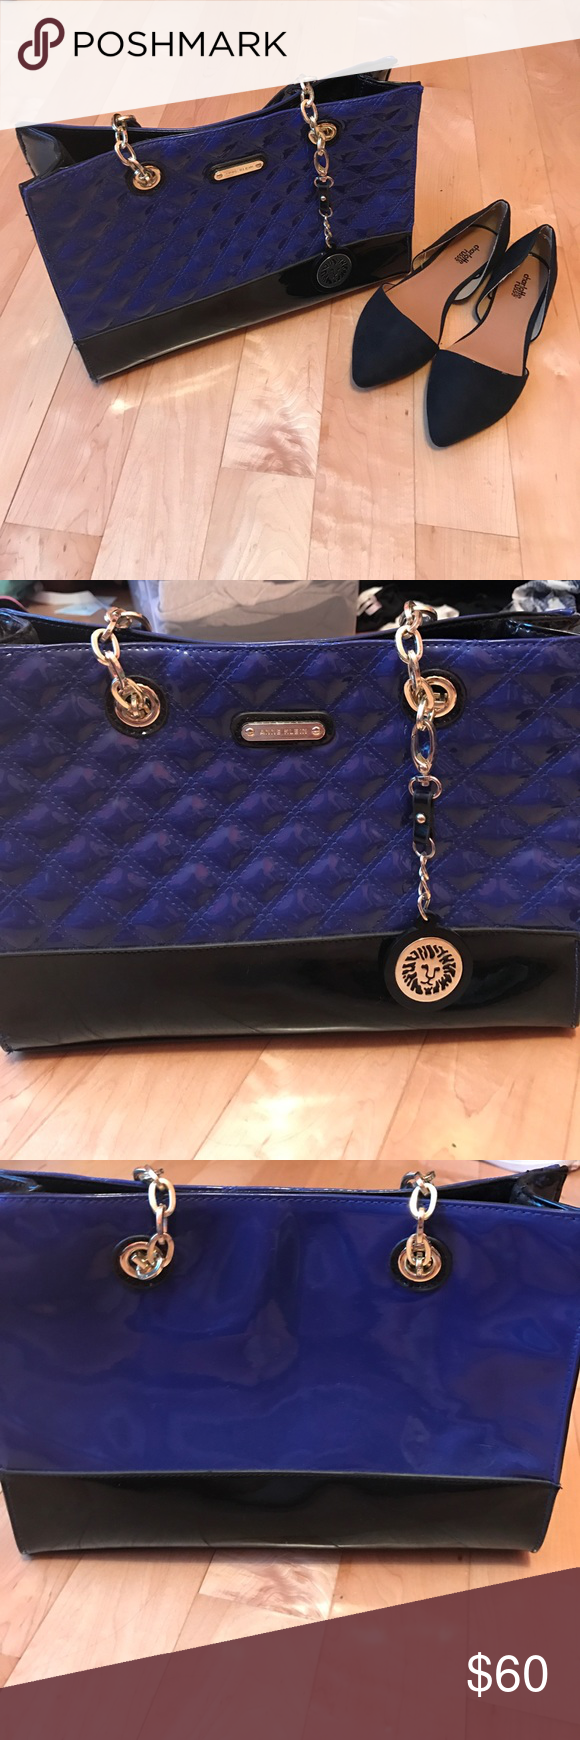 Blue Anne Klein Bag Never used, beautiful blue bag by Anne Klein Anne Klein Bags Shoulder Bags